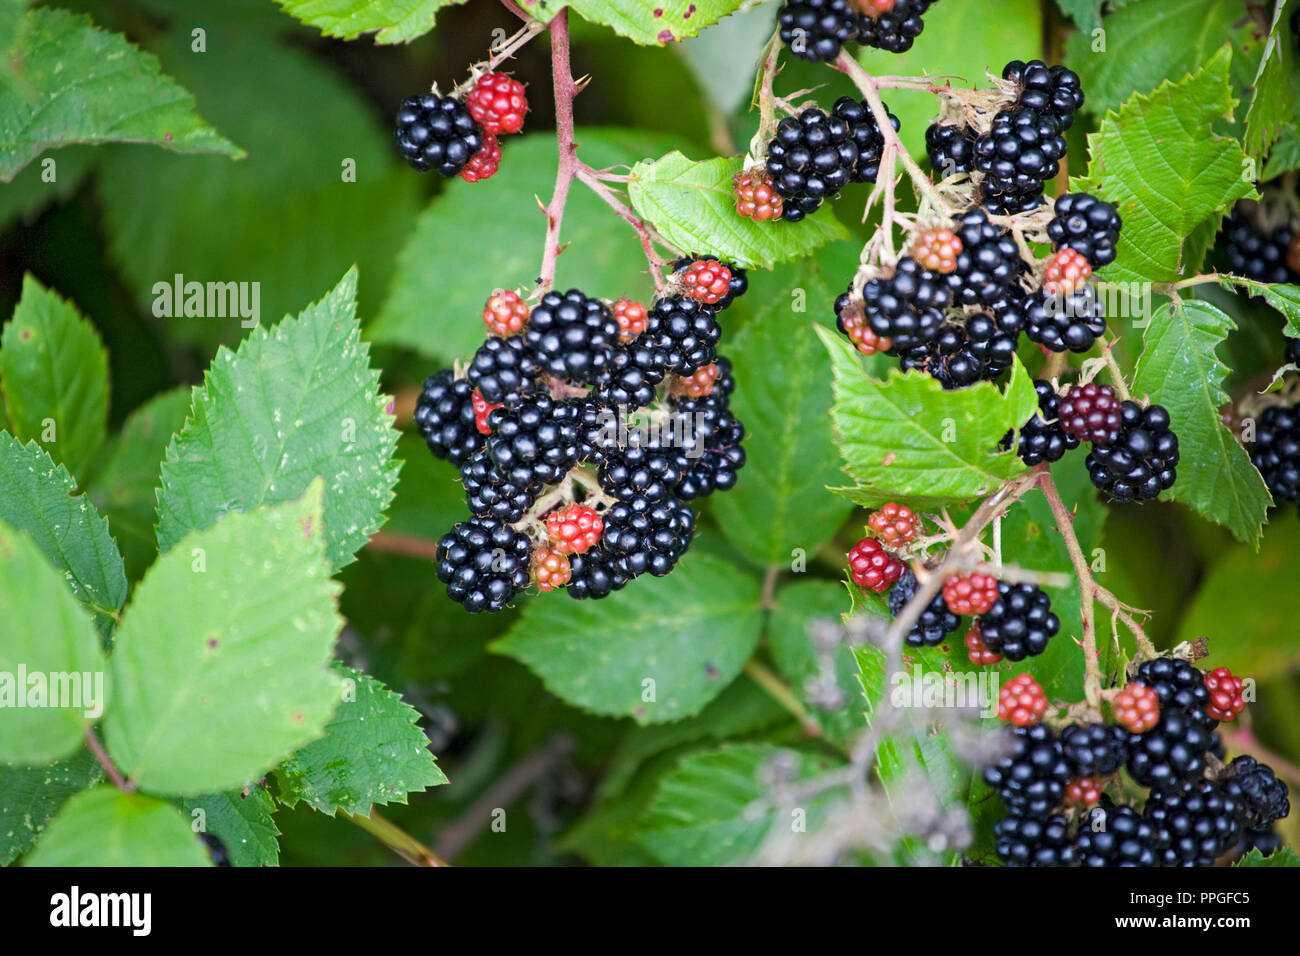 The stickery vines of Himalayan blackberries growing wild in the Willamette Valley of Oregon - Stock Image